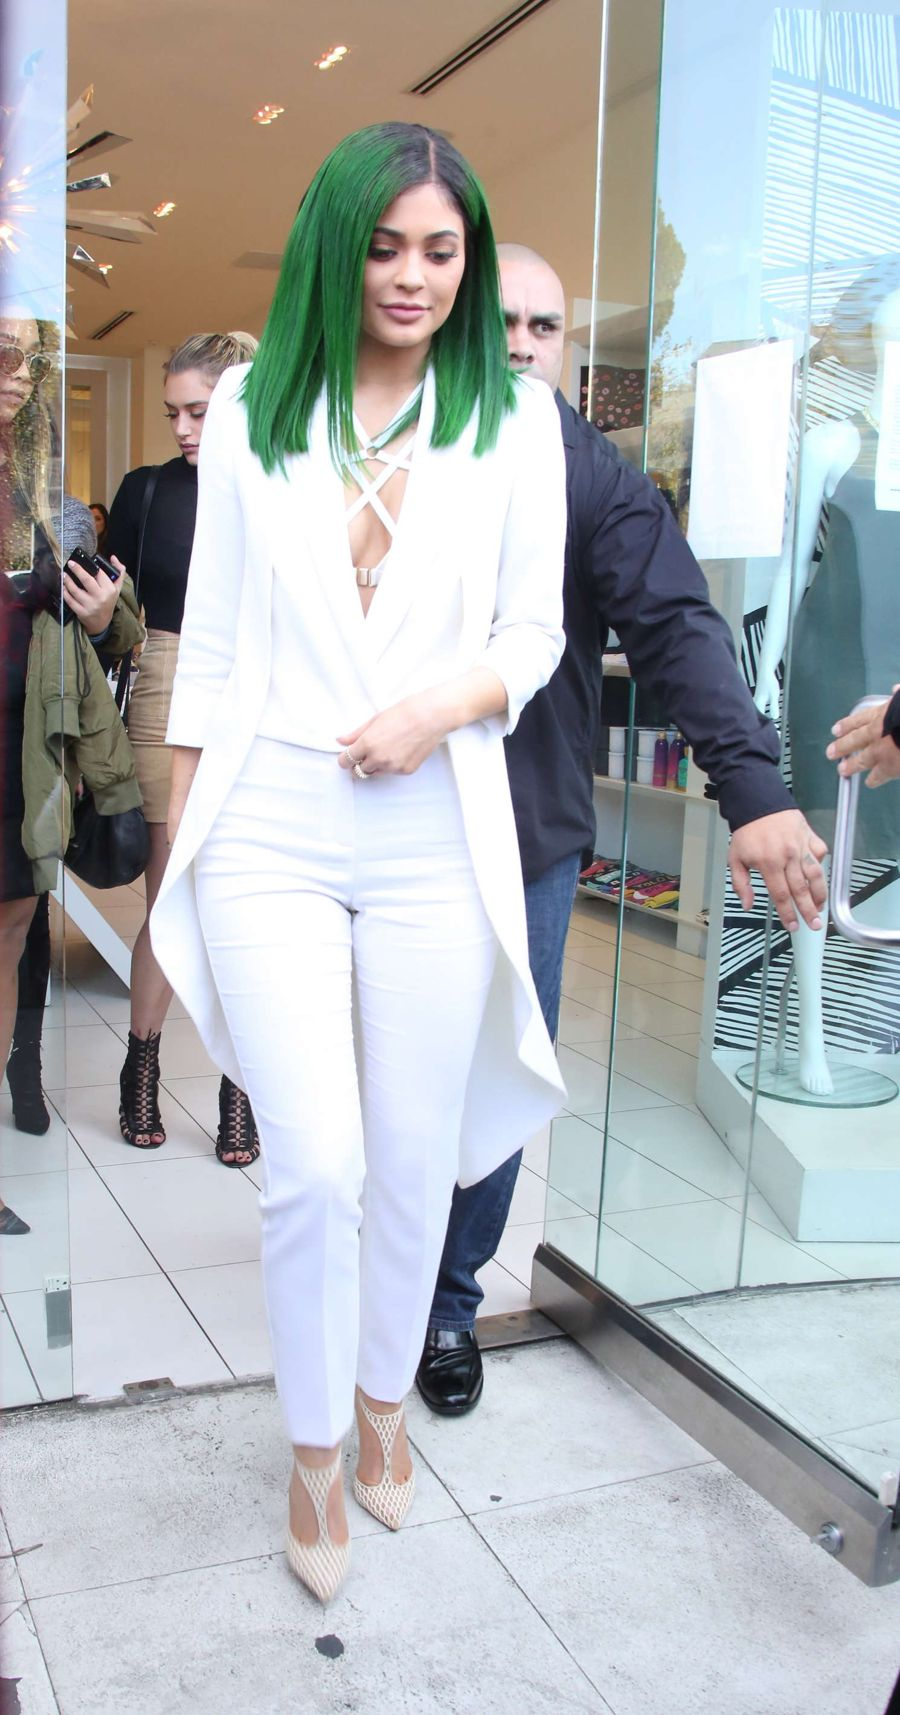 Kylie Jenner at the Dash Store in LA